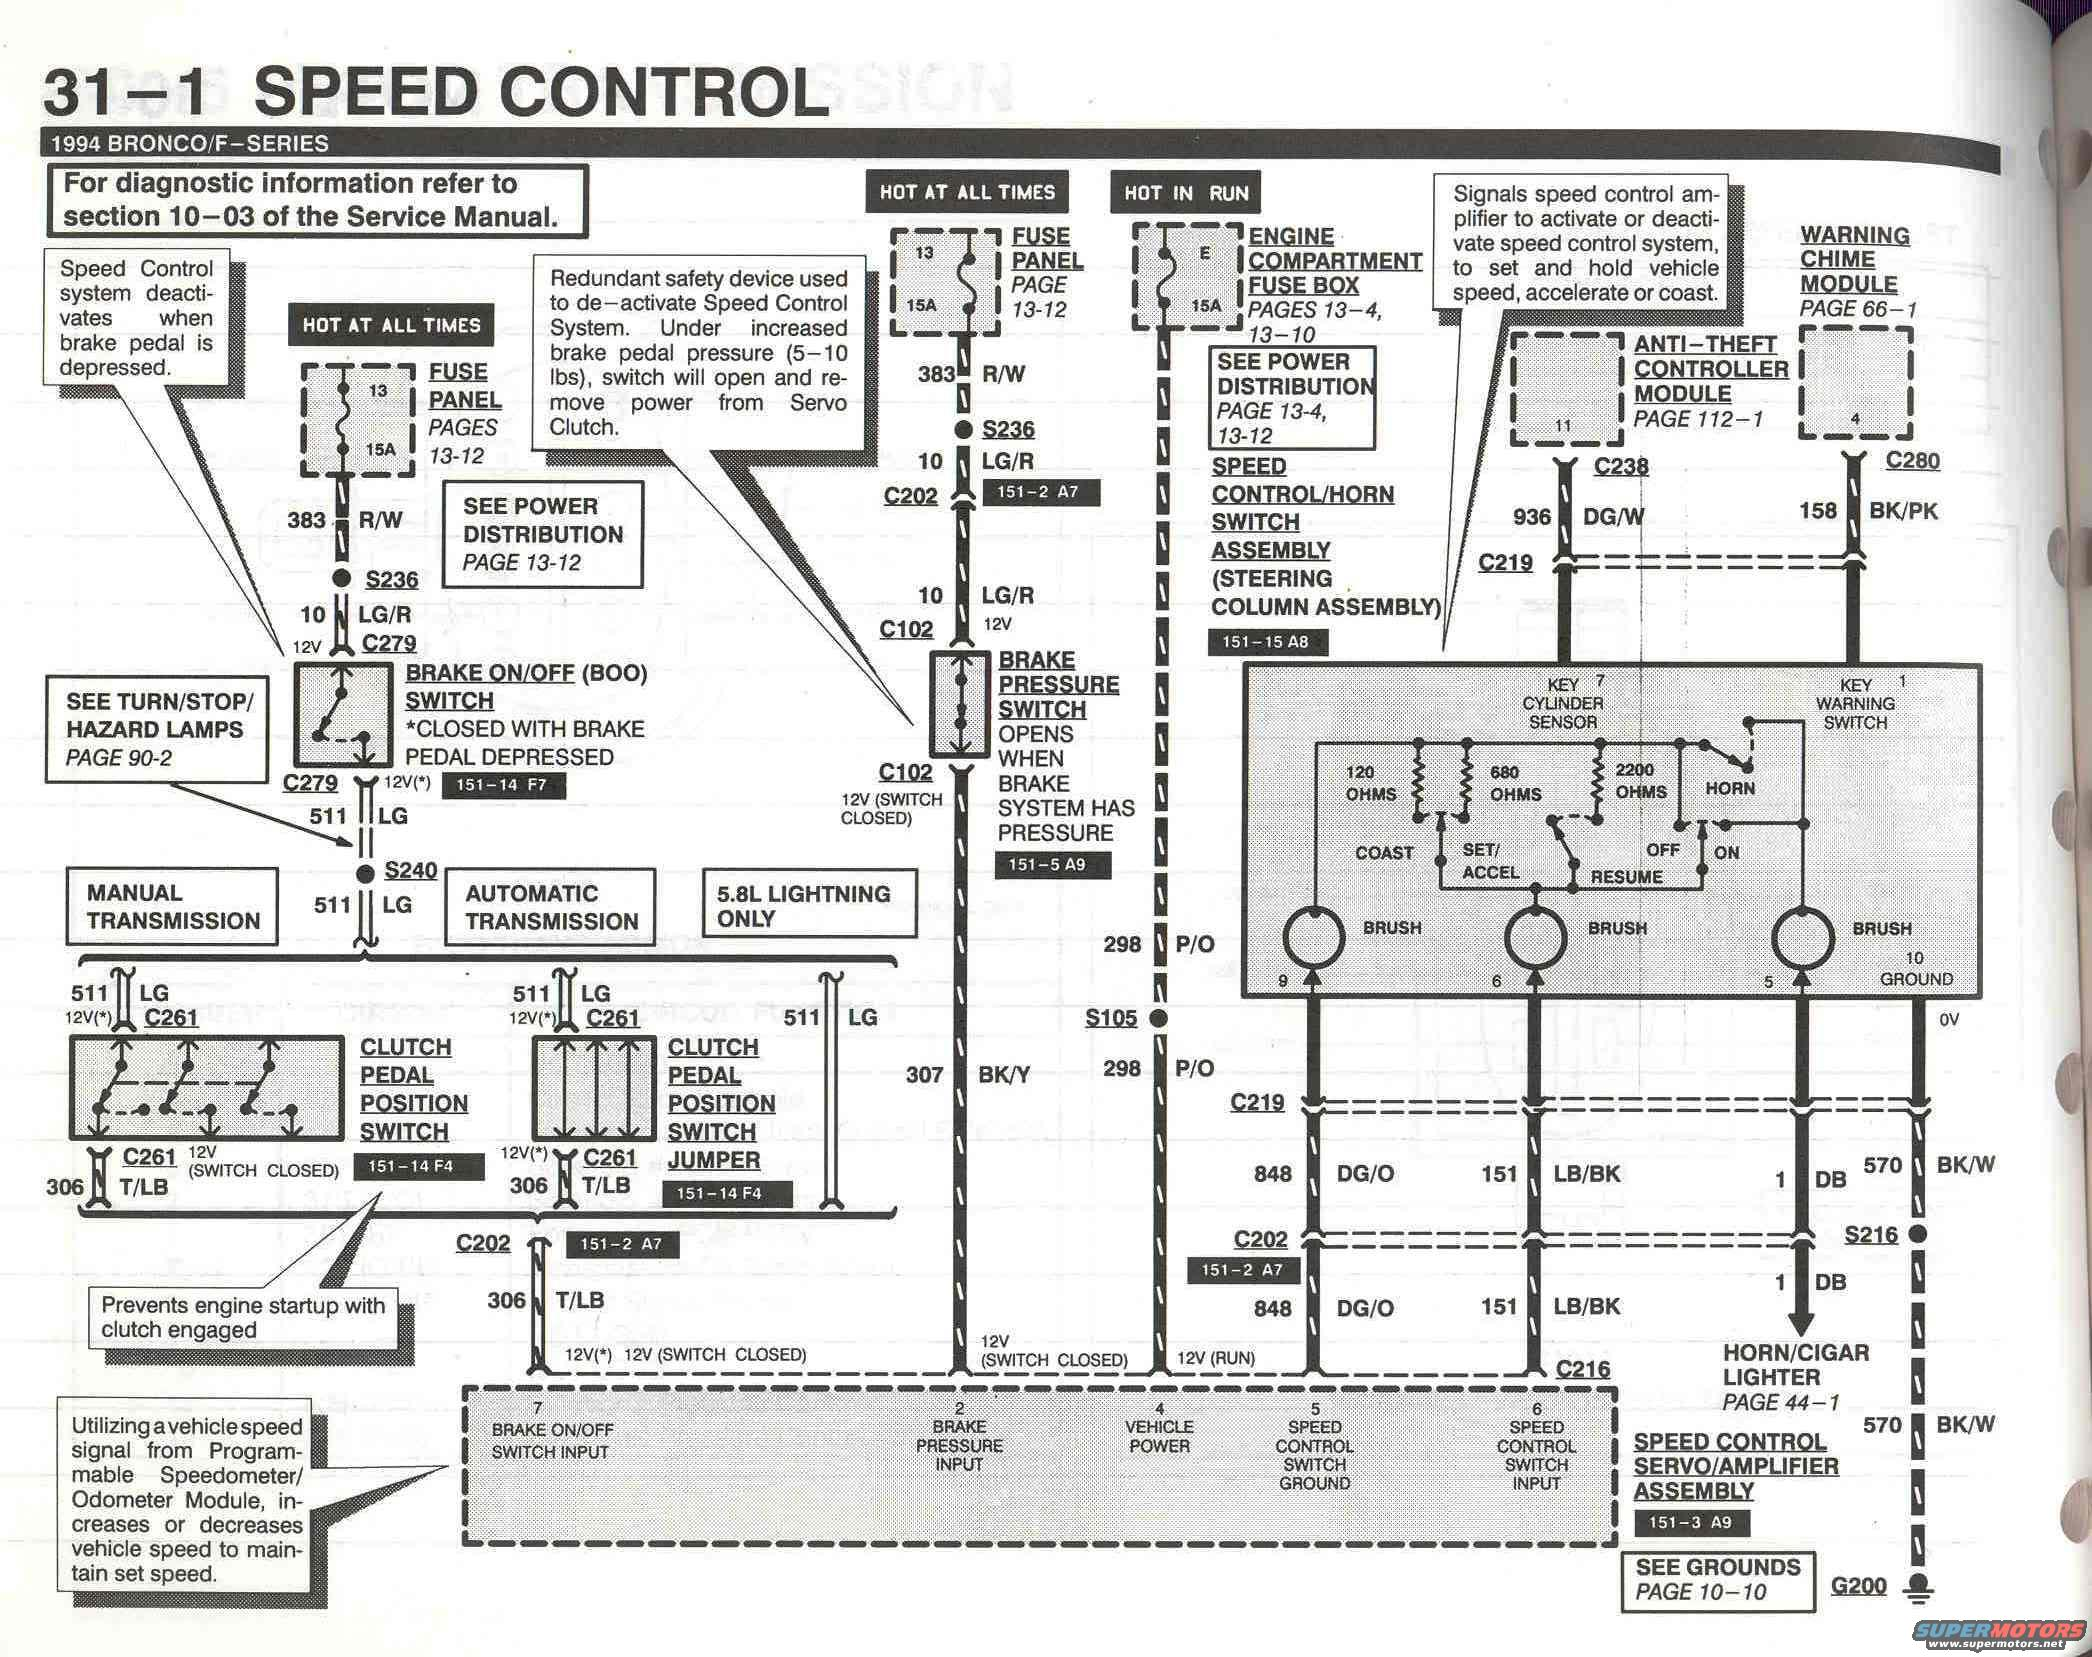 Help With Cruise Control